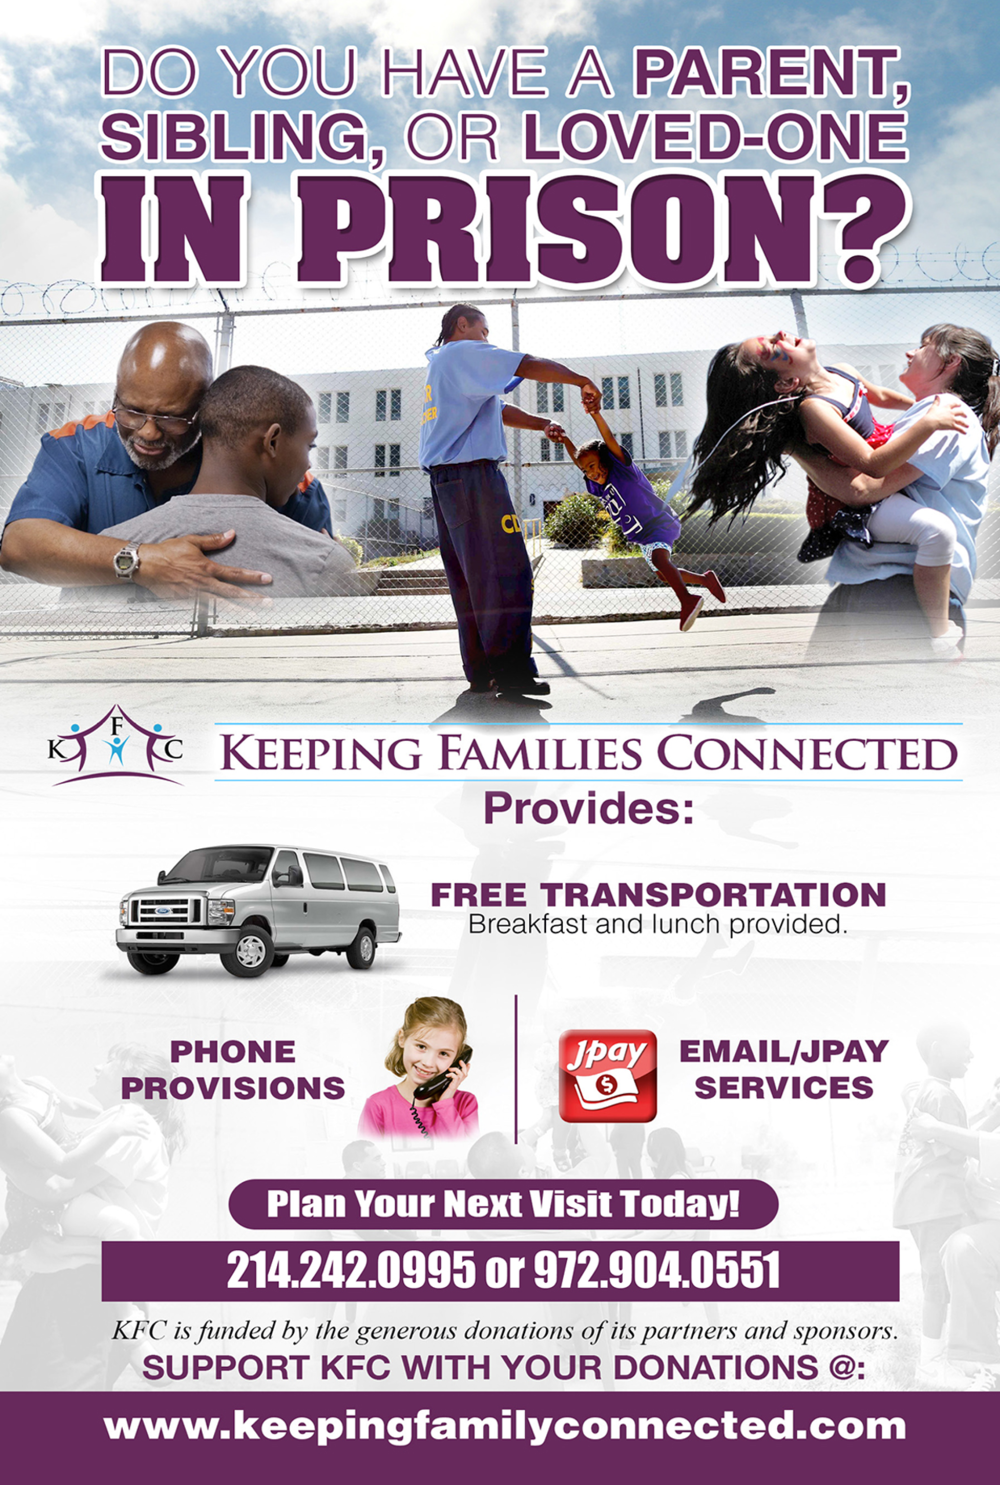 Services - Transportation - We provide weekly transportation services to prison facilities in Texas, for those who are in need of visiting their loved ones in prison. These prison visits include a complimentary meal for those traveling to see their loved ones. Tele-Communication ServicesK.F.C. will have phone services set up to where the inmates will be able to call our facility to speak to their children.Email & JPay Communications...K.F.C. will have laptops, desktops, ipads, tablets etc. Which will make it possible for the children who have parents who are incarcerated to stay connected by emailing. Also we will aide them in letter writing.